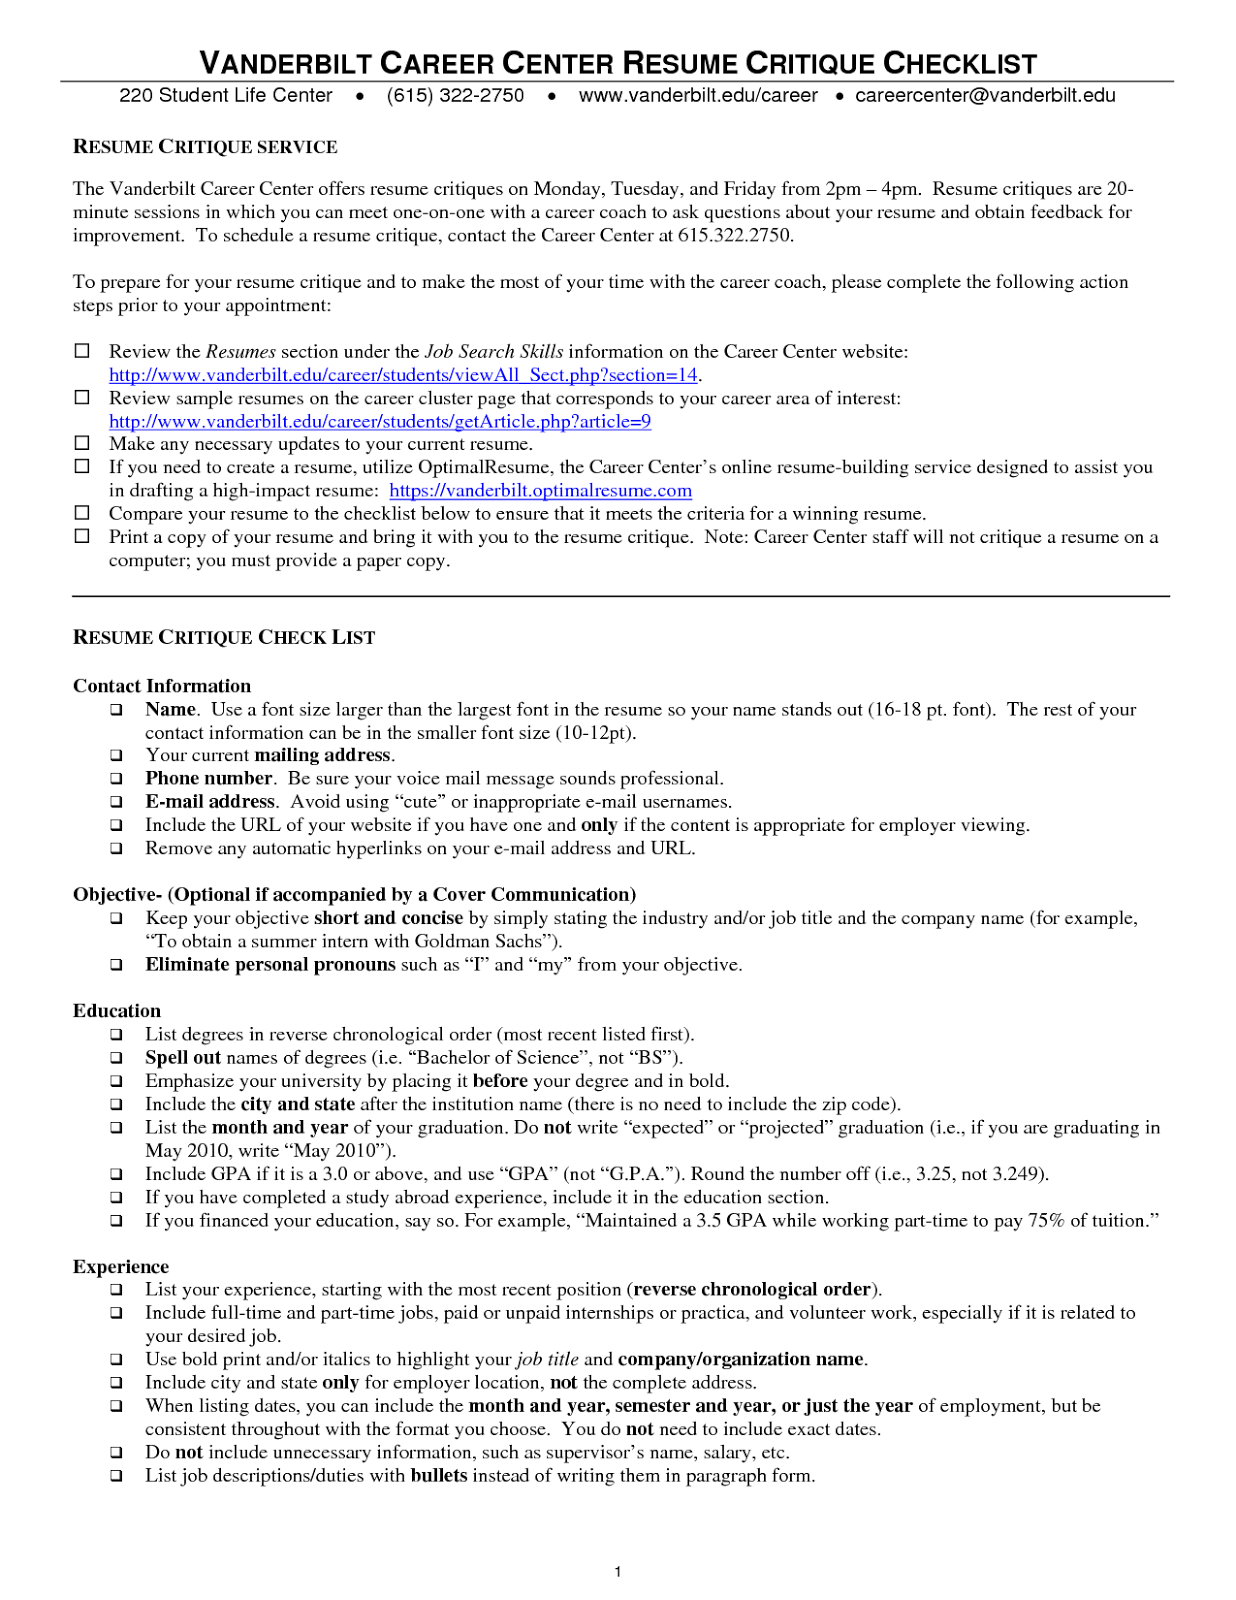 Questions to ask when making a resume